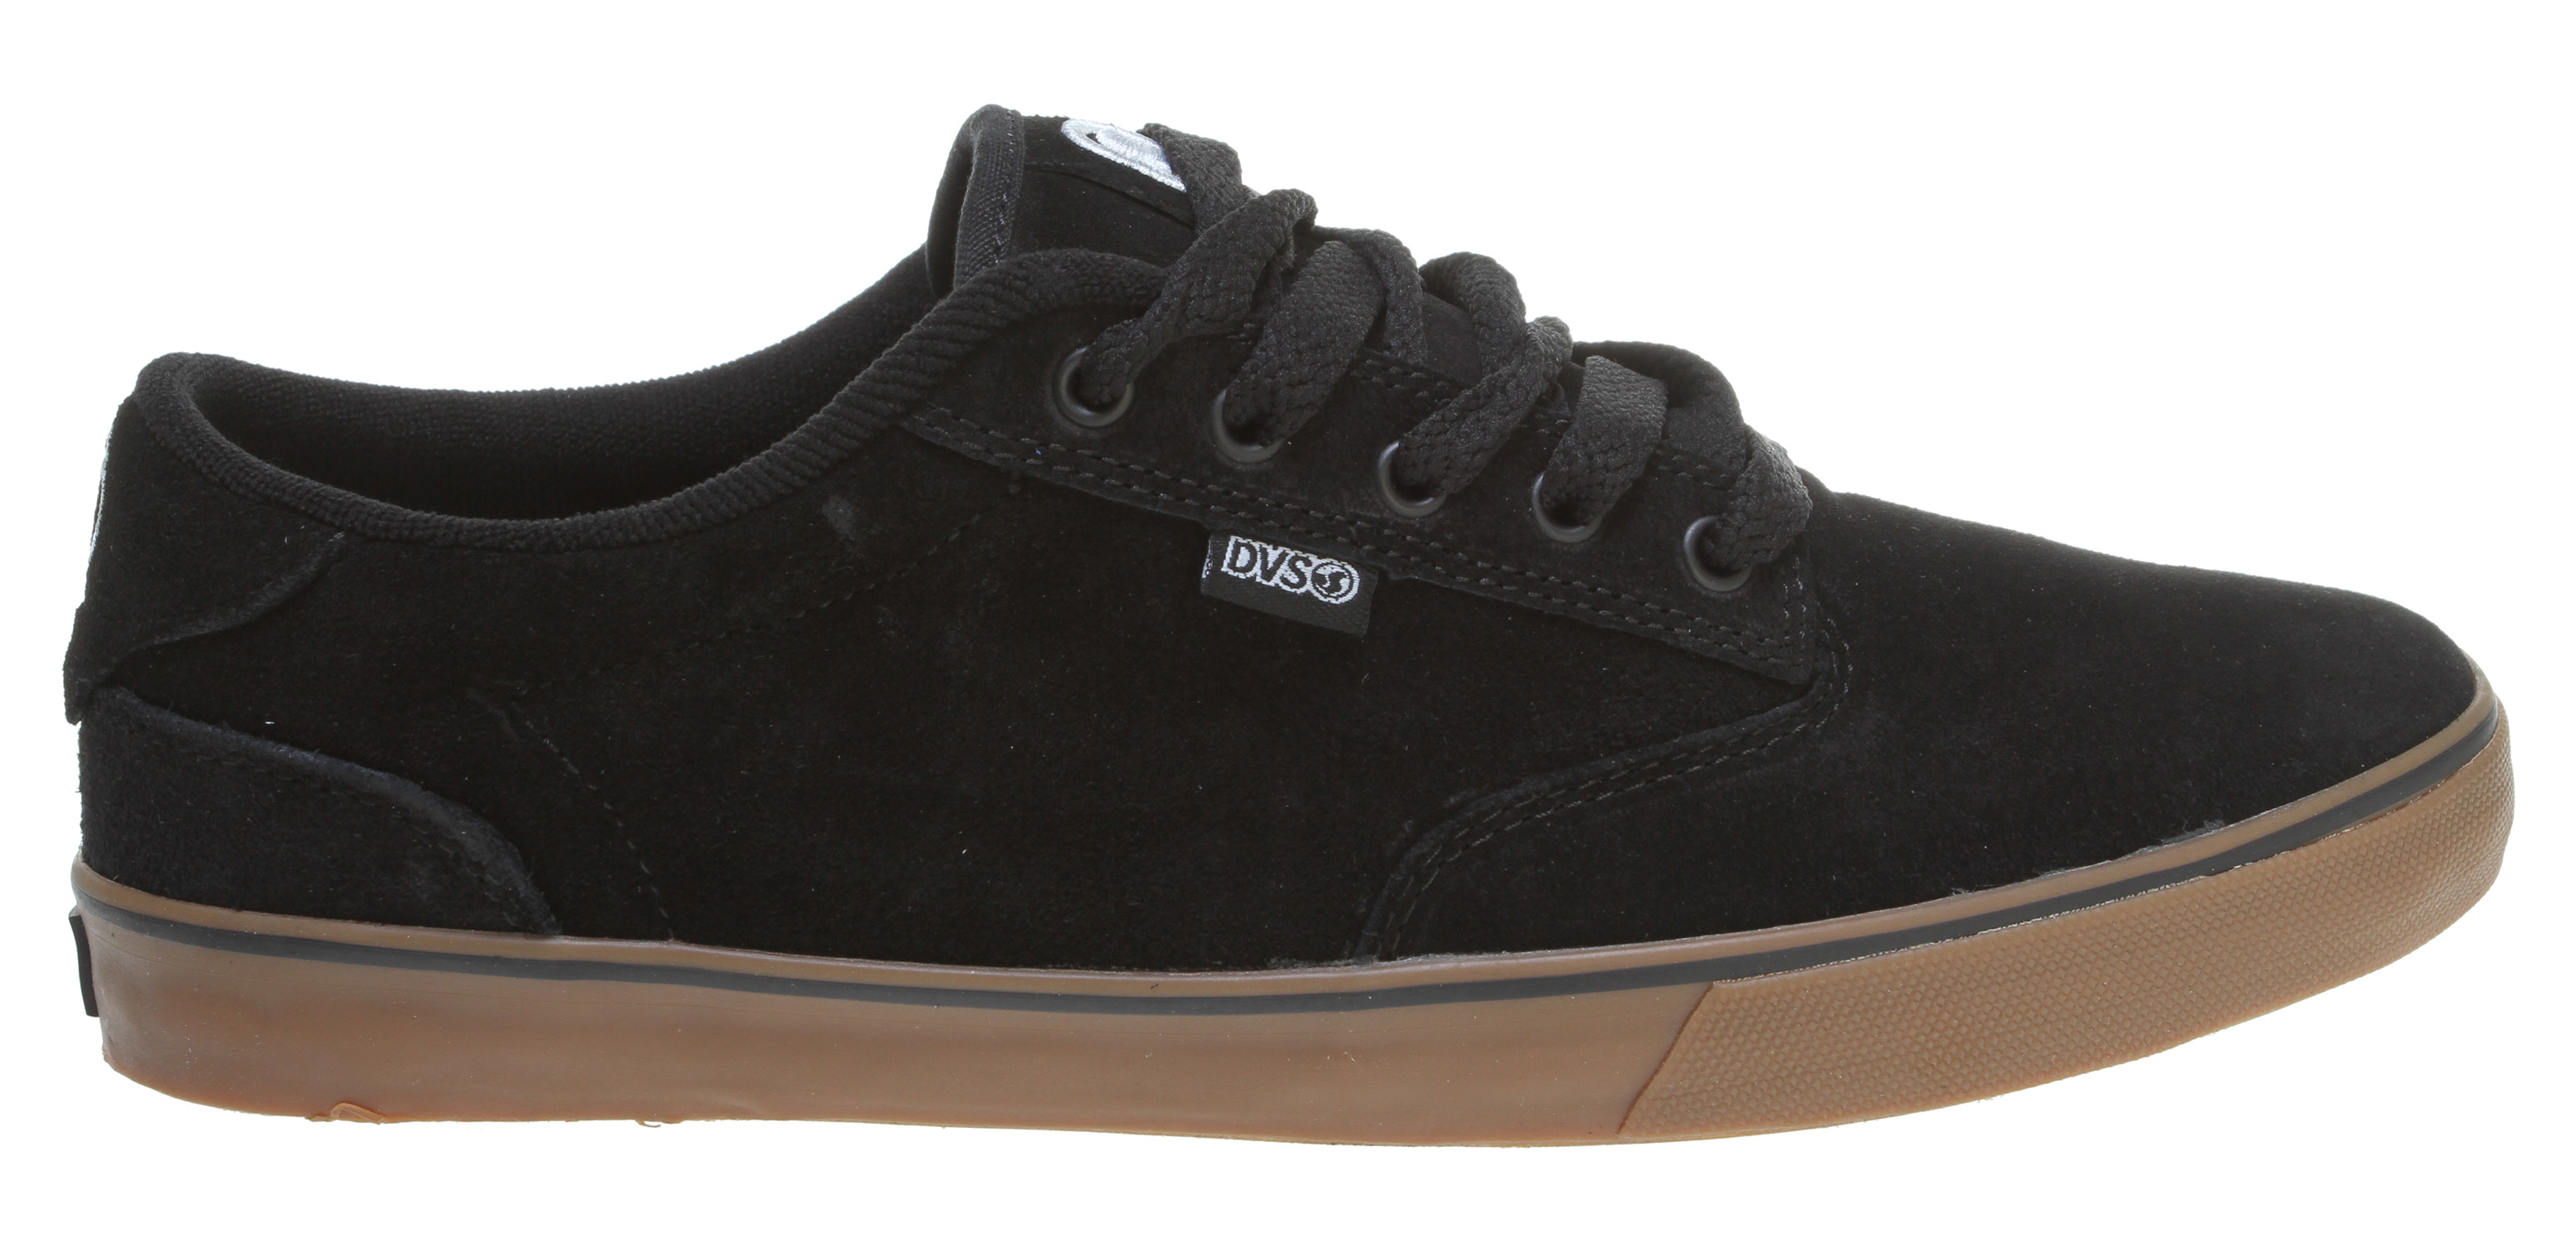 Skateboard Key Features of the DVS Daewon 12'er Skate Shoes: Non slip vulcanized outsole Custom double sided flag label Hidden double sided flag label under heel tab Highly flexible lasting board Bruise Control Technology - $35.95